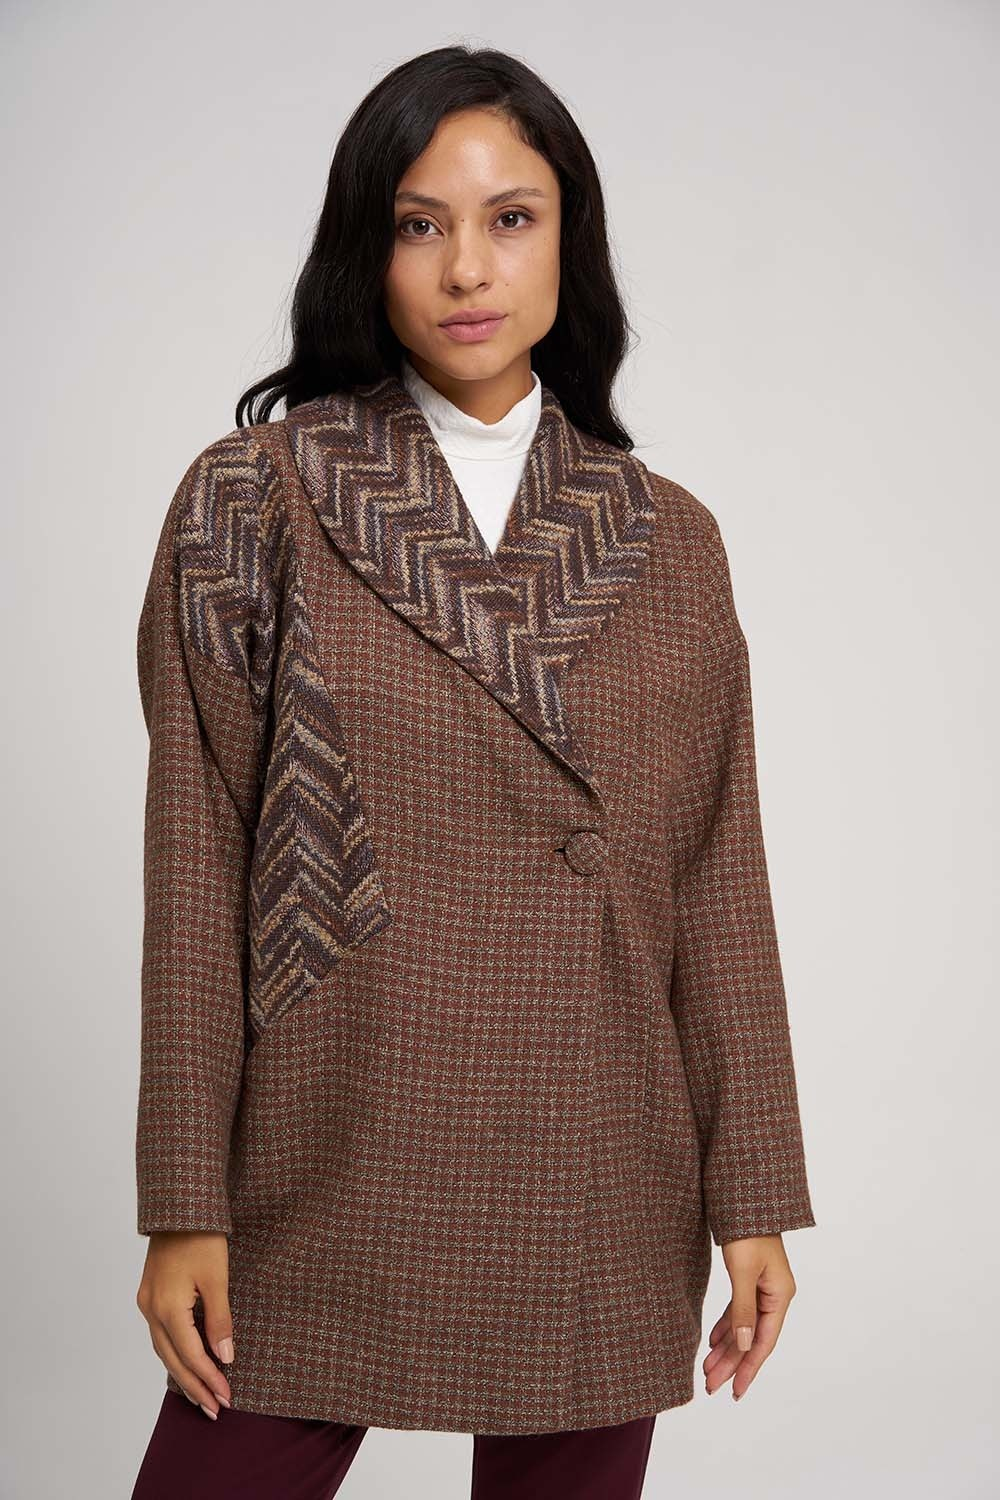 MIZALLE Collar Pattern Coat Jacket (Beige) (1)